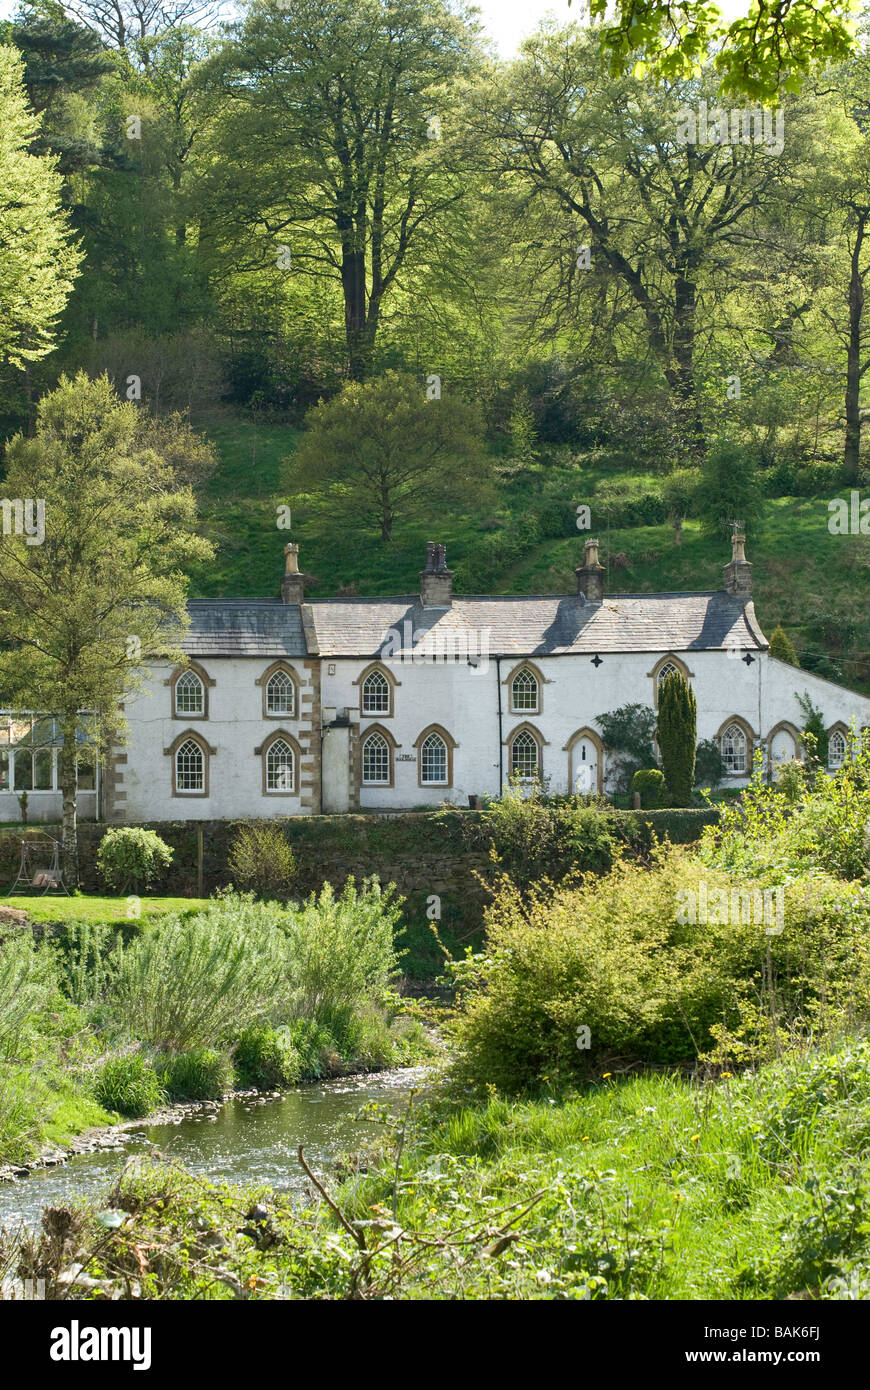 Cottages at Whalley in Lancashire by the River Calder - Stock Image